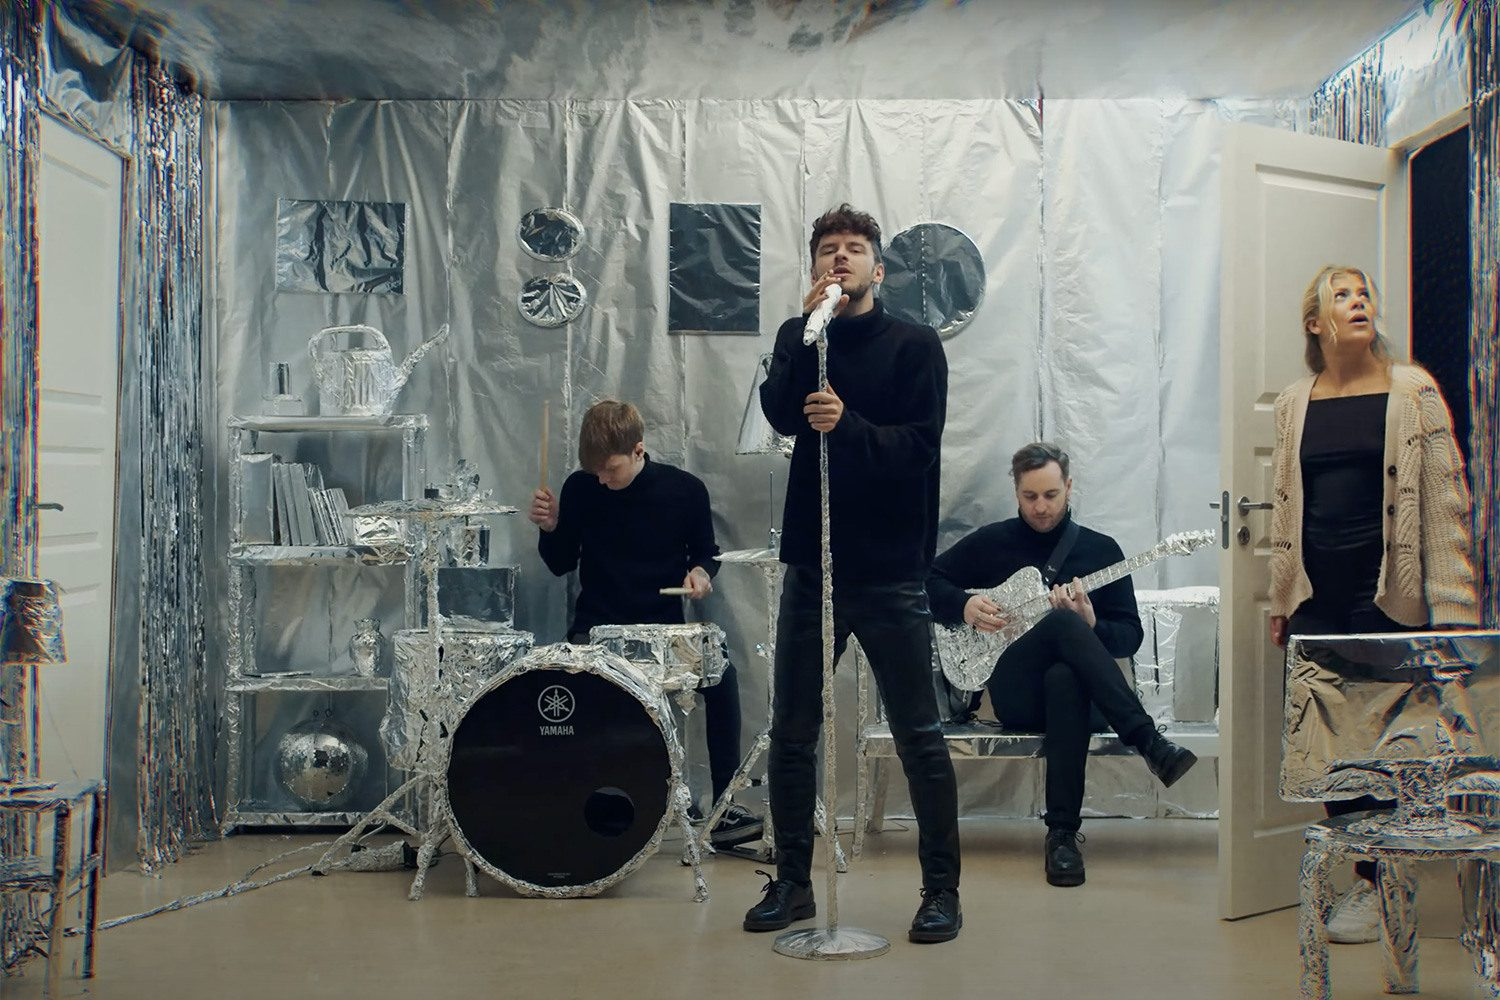 If your local supermarket is out of tinfoil, Normandie's new video for 'Babylon' might be why